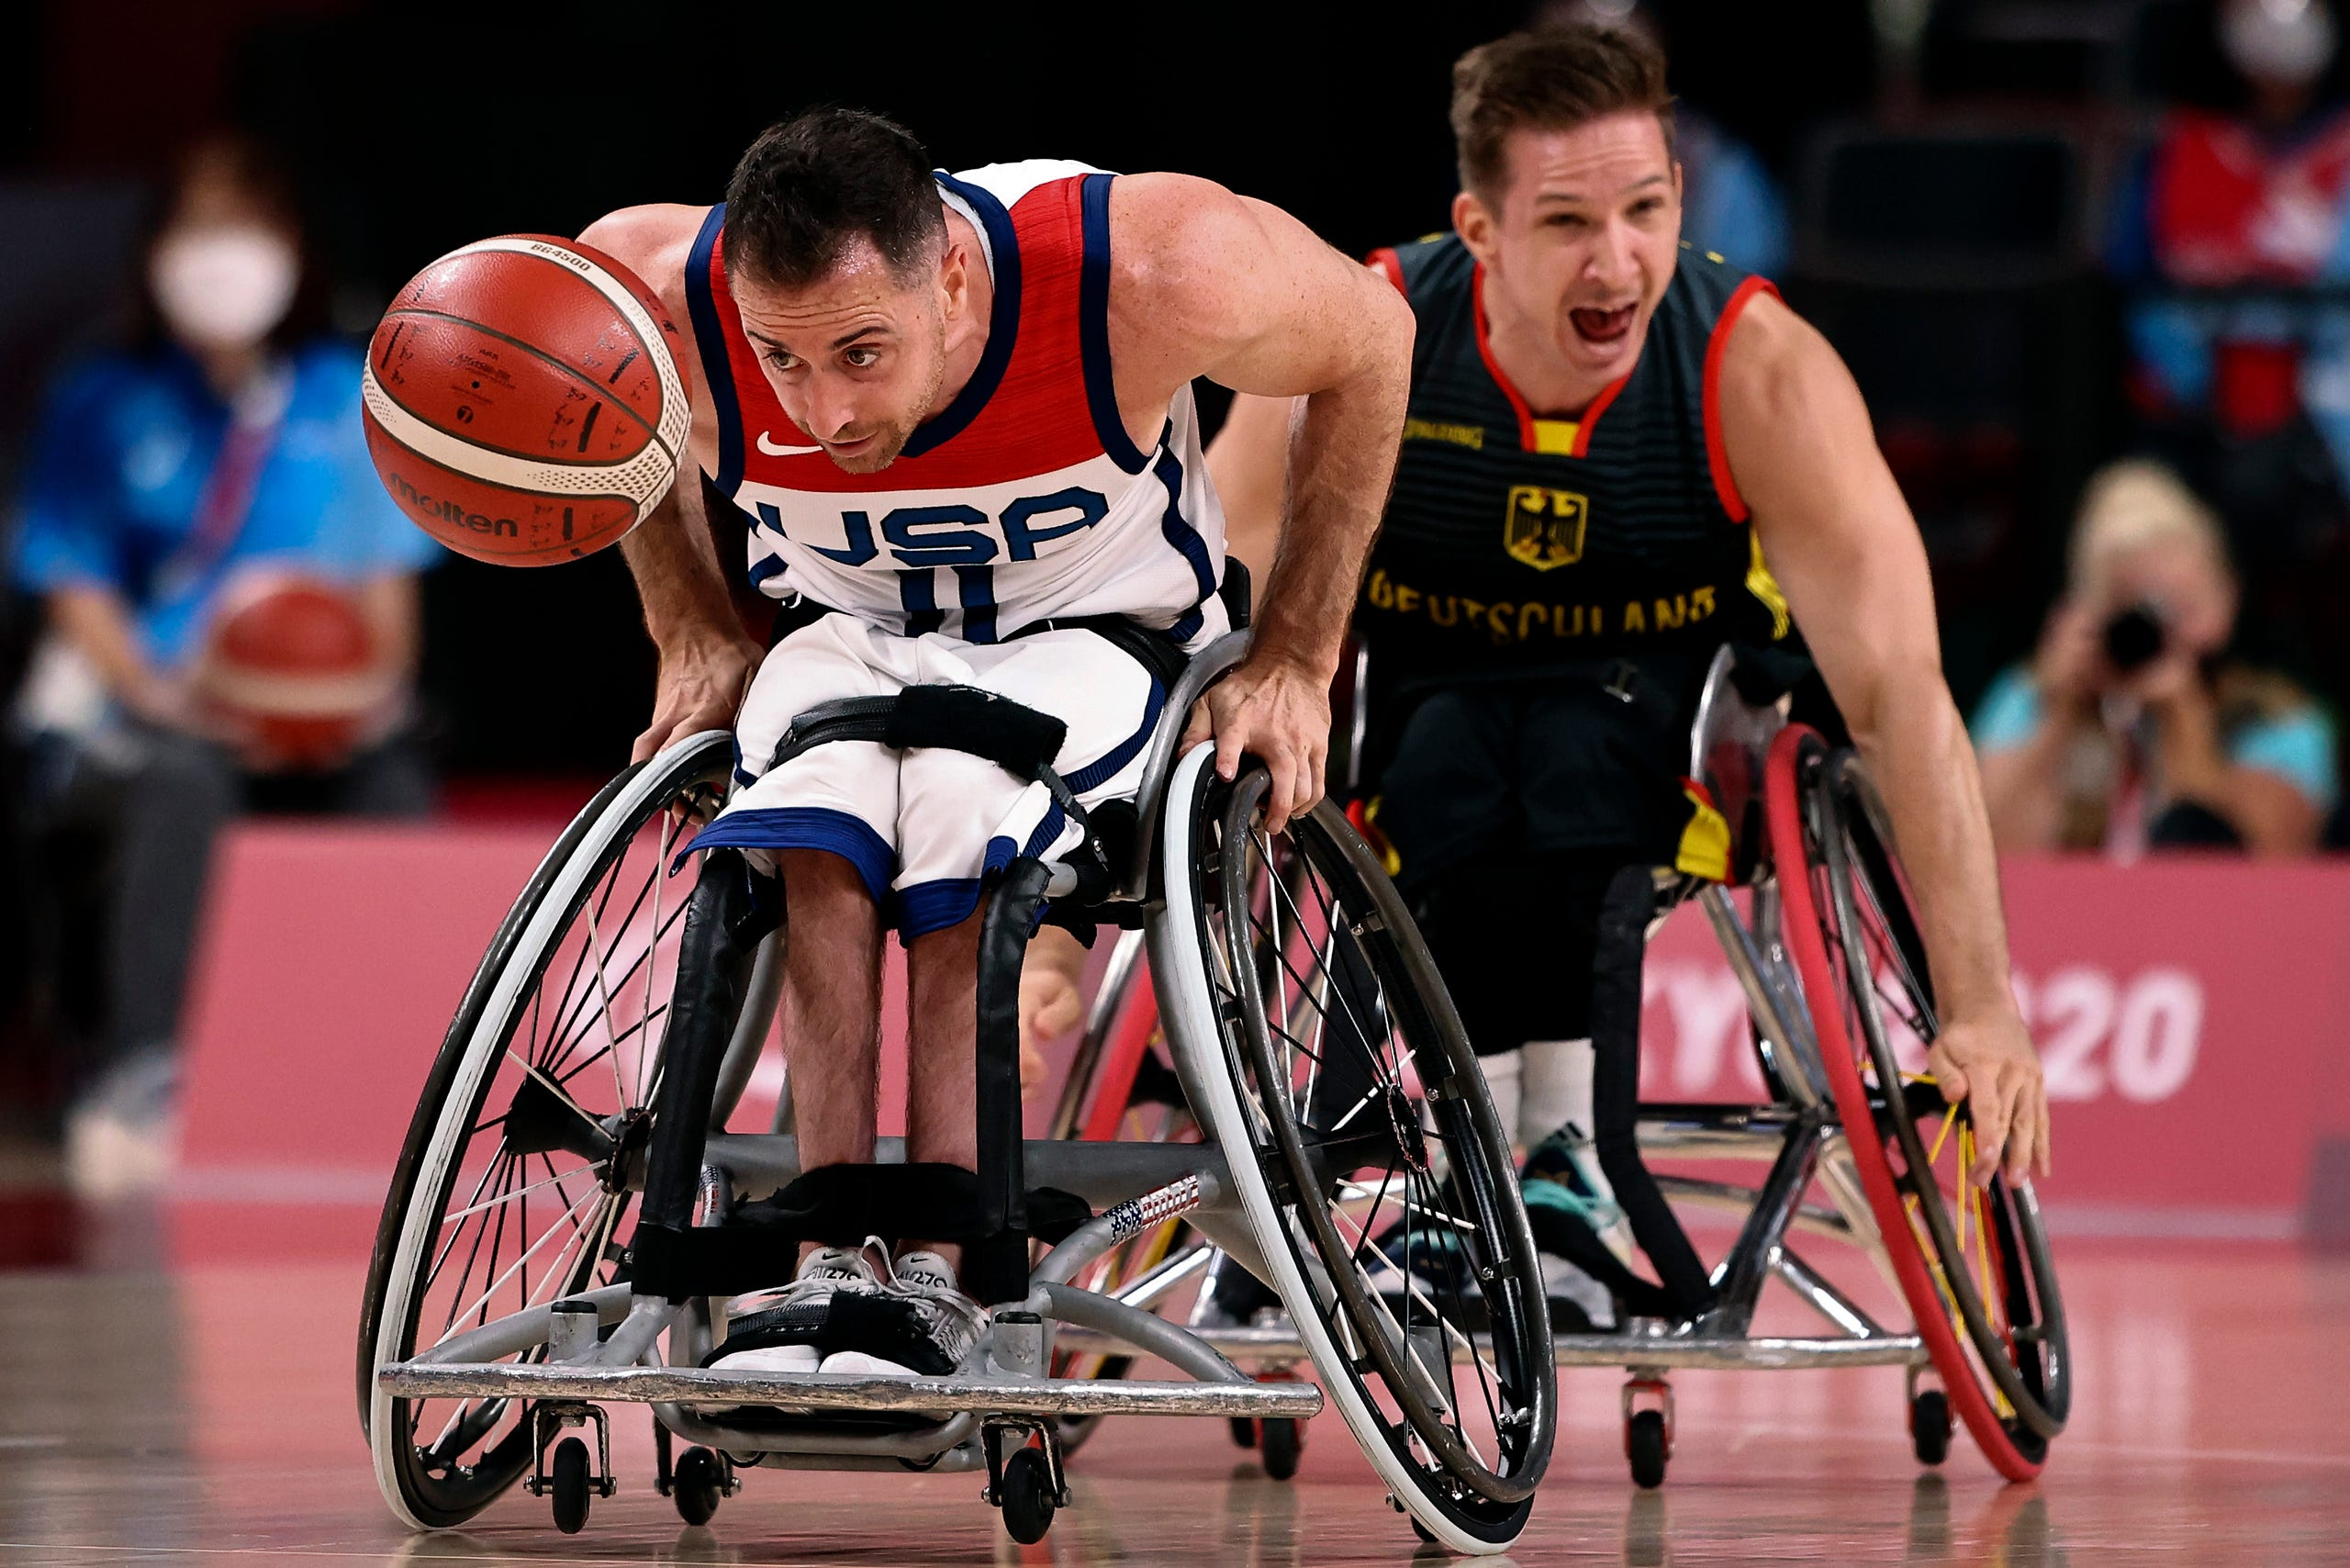 August 26, 2021: Steve Serio of Team USA controls the ball during the Men's Preliminary Round Group B match between Team United States and Team Germany on day 2 of the Tokyo 2020 Paralympic Games at Ariake Arena in Tokyo, Japan.